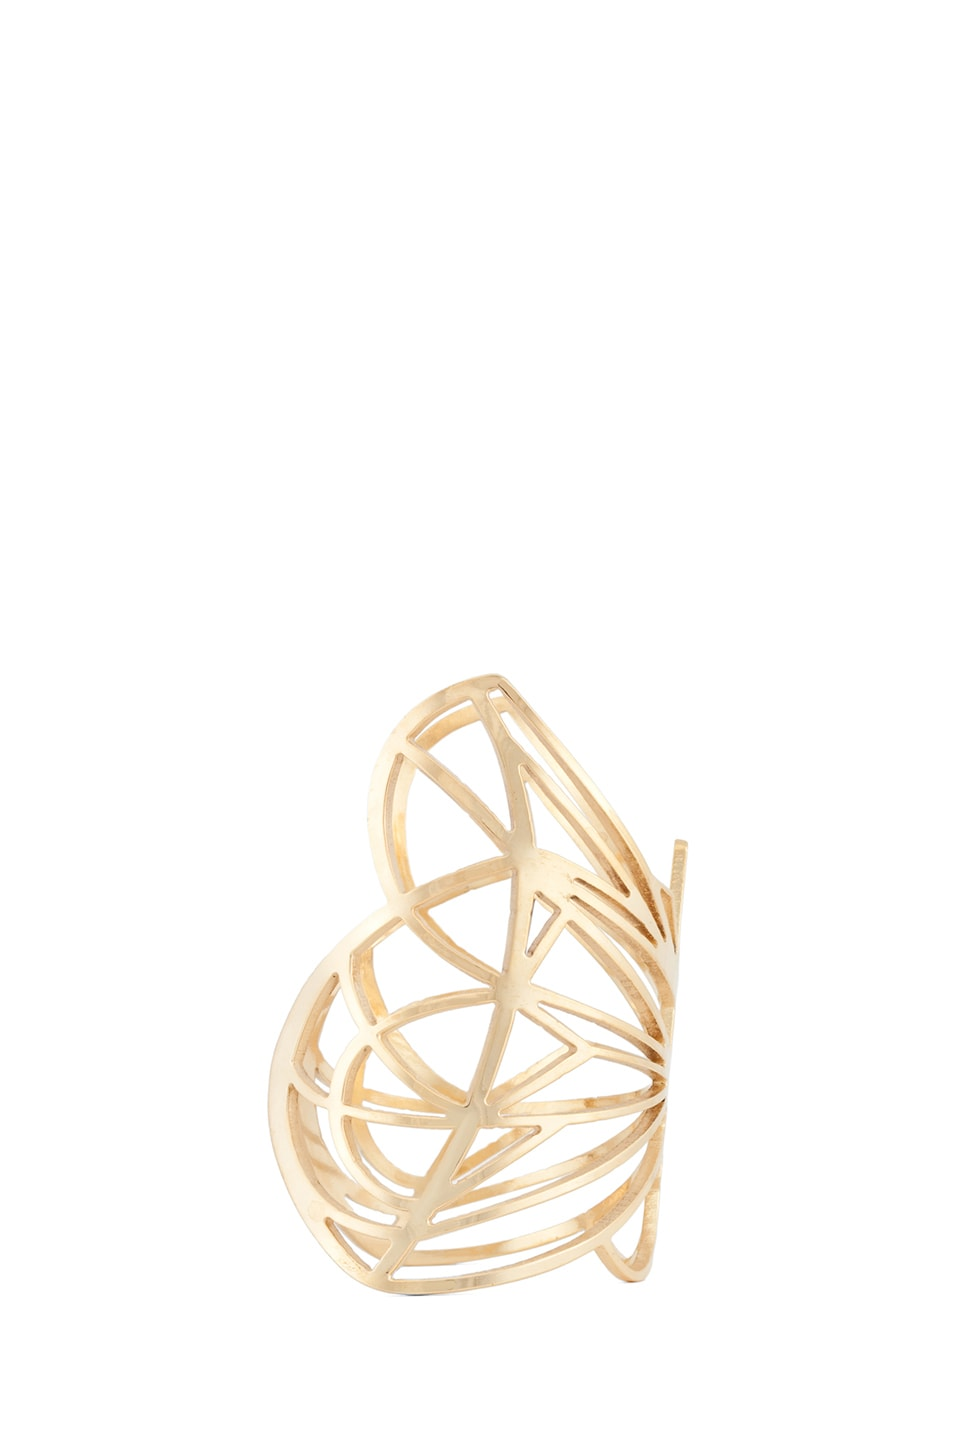 Image 2 of Kelly Wearstler Curiosity Butterfly Cuff in Gold Plated